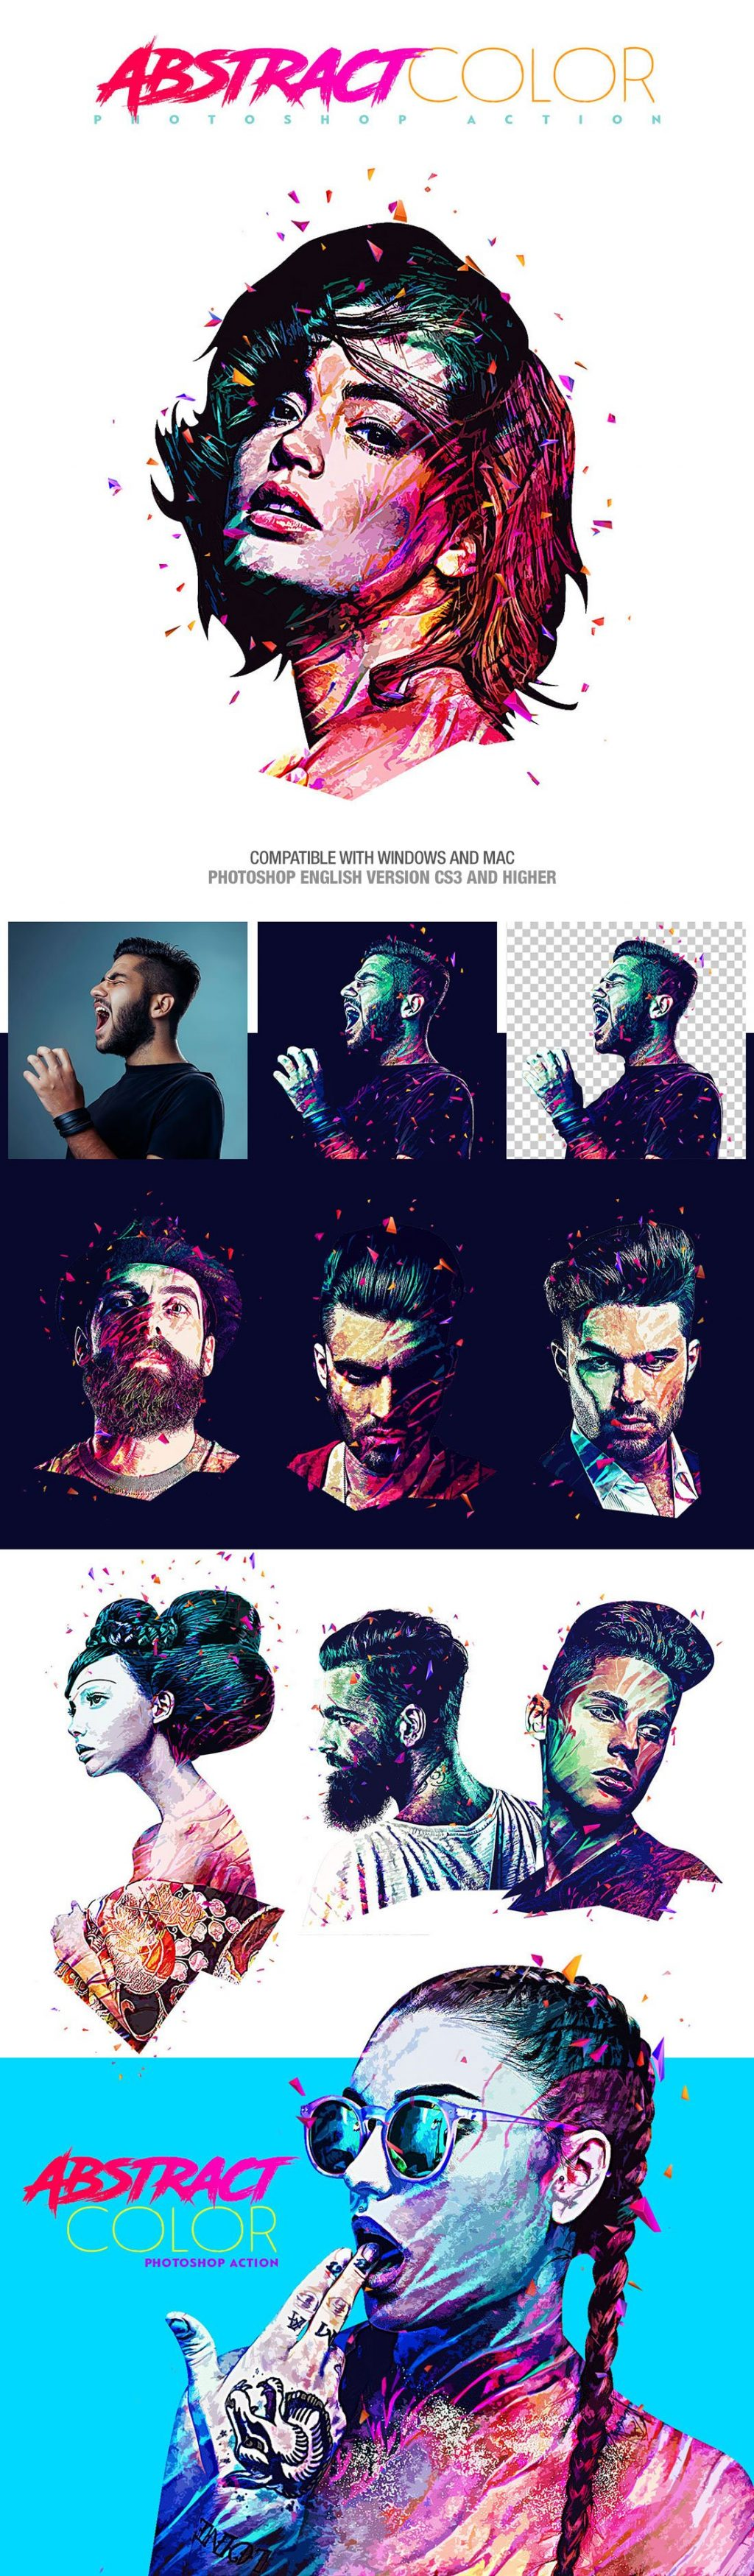 Photoshop Actions & Templates: Artistic Photo FX Bundle - abstract color photoshop action design by amorjesu